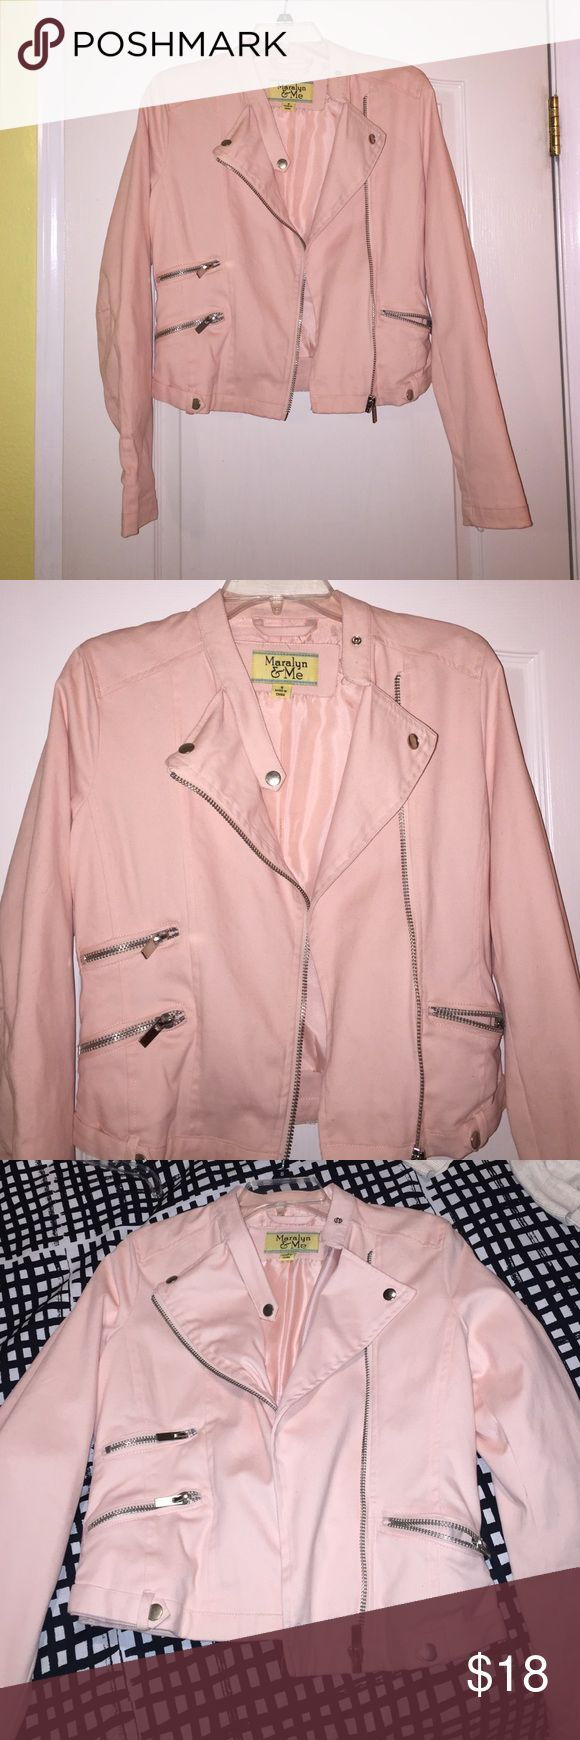 Light Pink motorcycle style jacket Baby pink motorcycle style jacket with silver hardware. Looks great on! Only worn a couple of times. Originally from Jcpenny. jcpenney Jackets & Coats